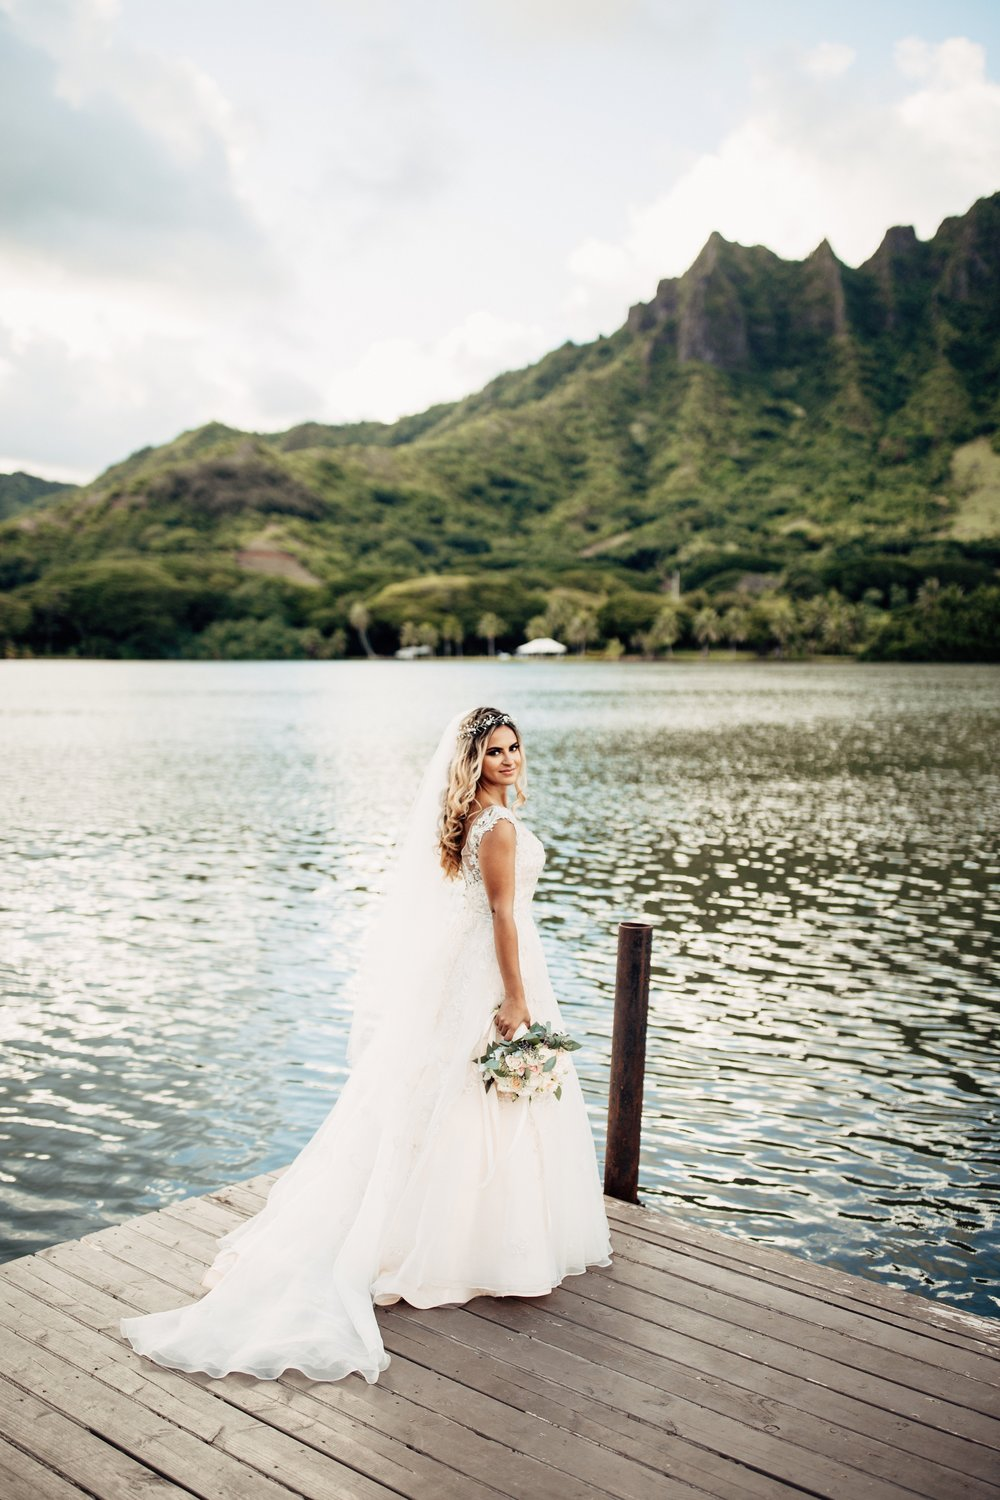 KUALOA-RANCH-WEDDING-1572FINAL.jpg